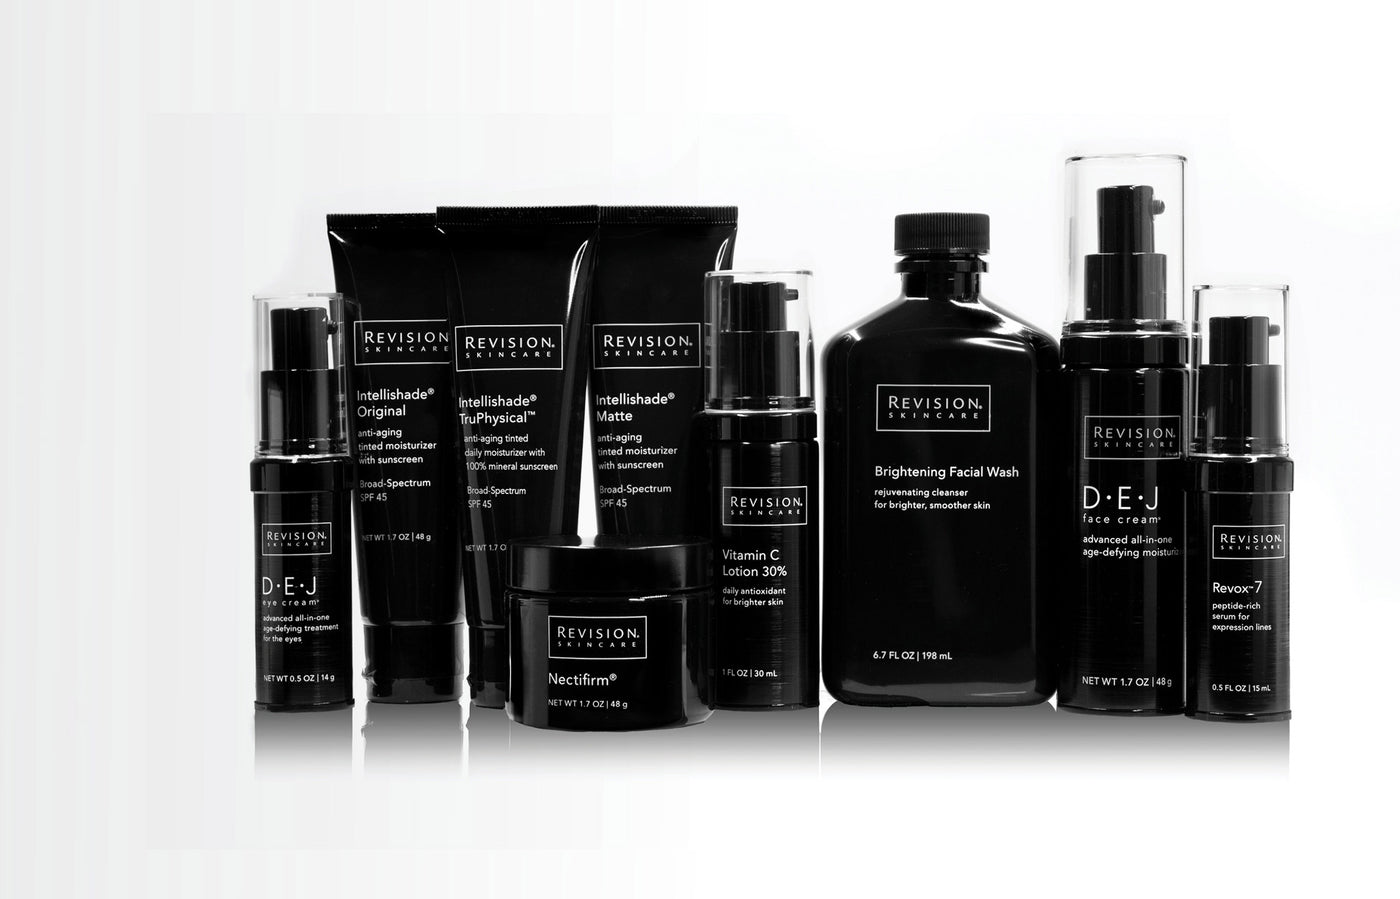 Revision Skincare | Achieve Healthy, Beautiful Skin™